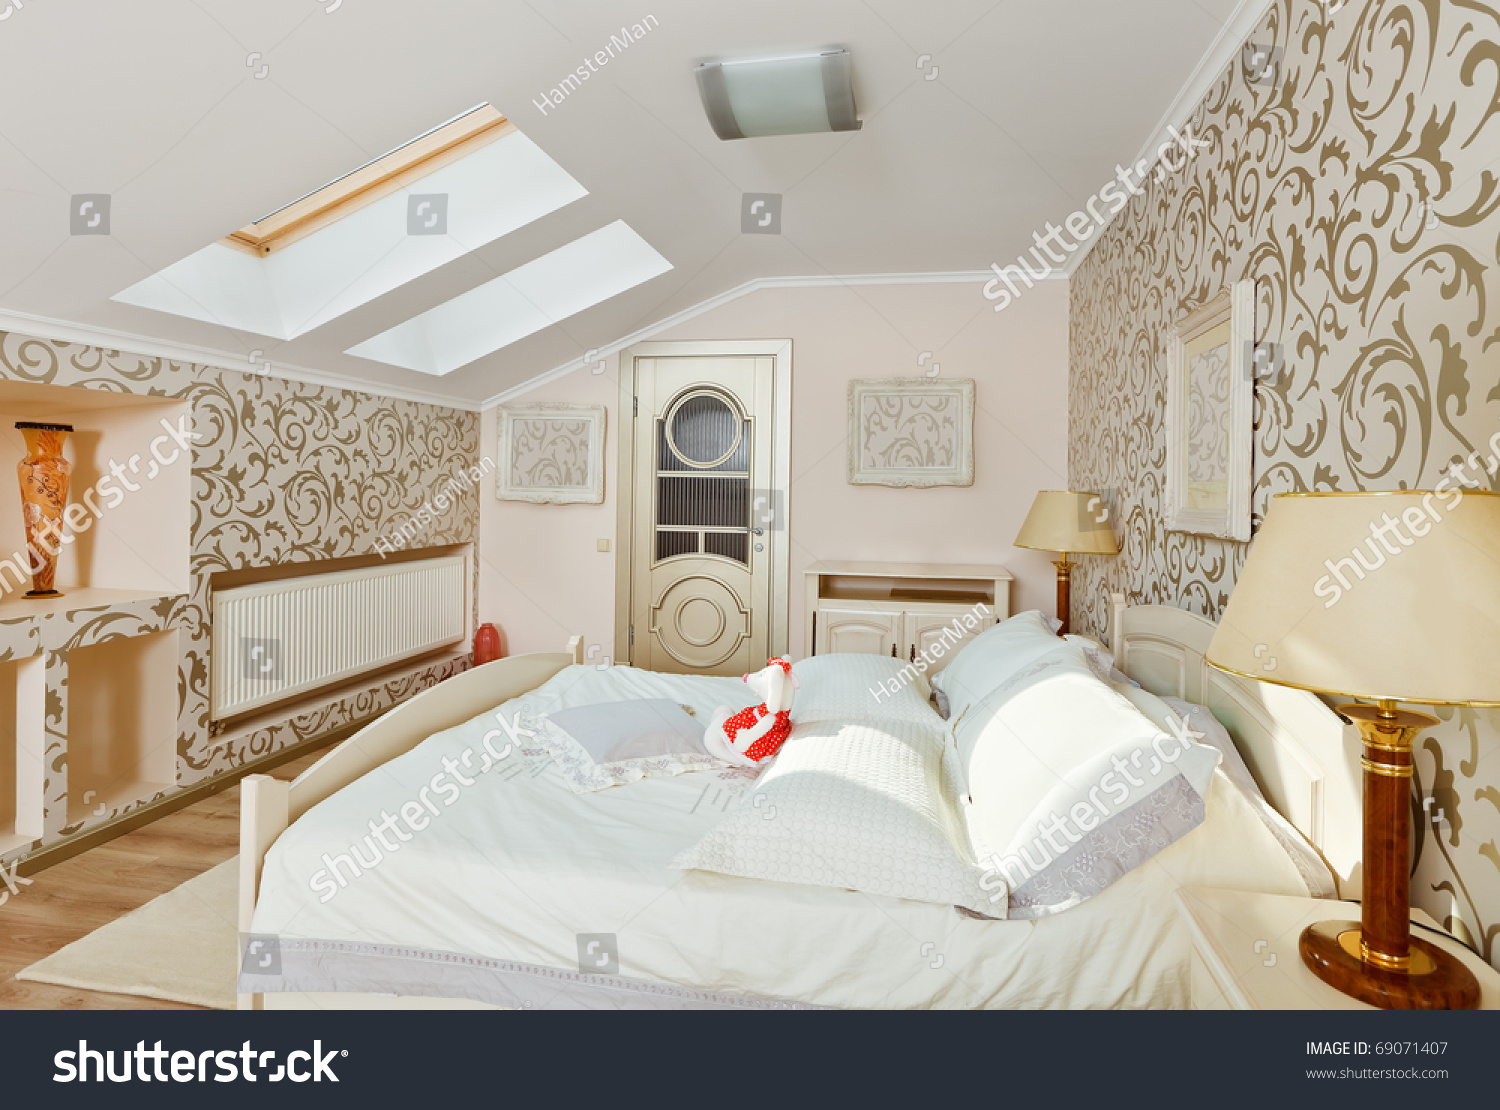 modern art deco style bedroom interior in light beige colors on loft room stock photo 69071407. Black Bedroom Furniture Sets. Home Design Ideas